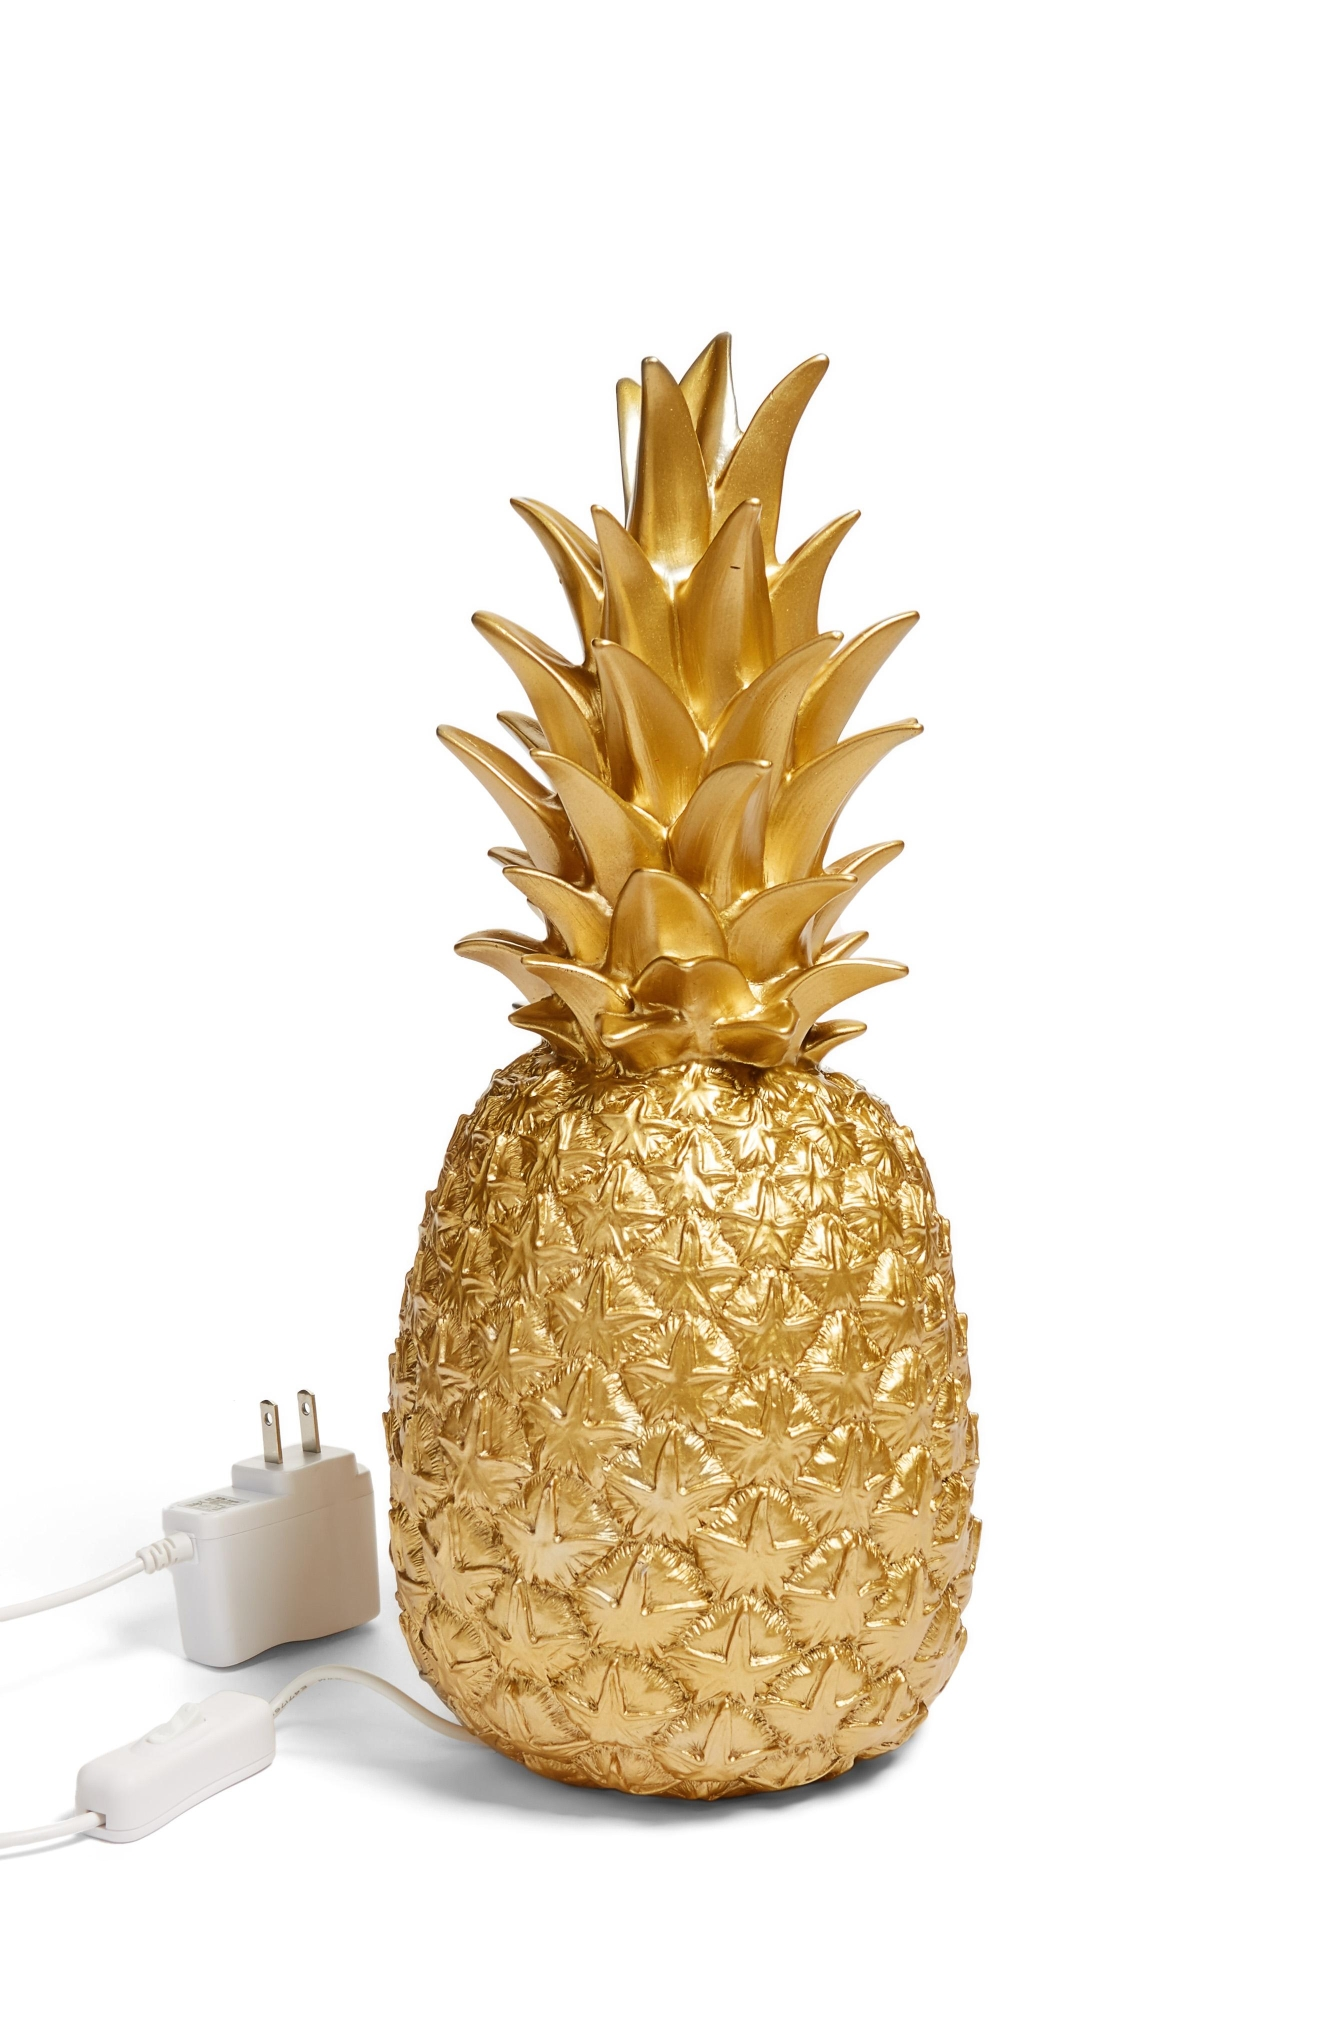 Goodnight Light Pina Colada Lamp, Gold - $93. Buy at shop.nordstrom.com/c/pop-in-olivia-kim (Image: Nordstrom)